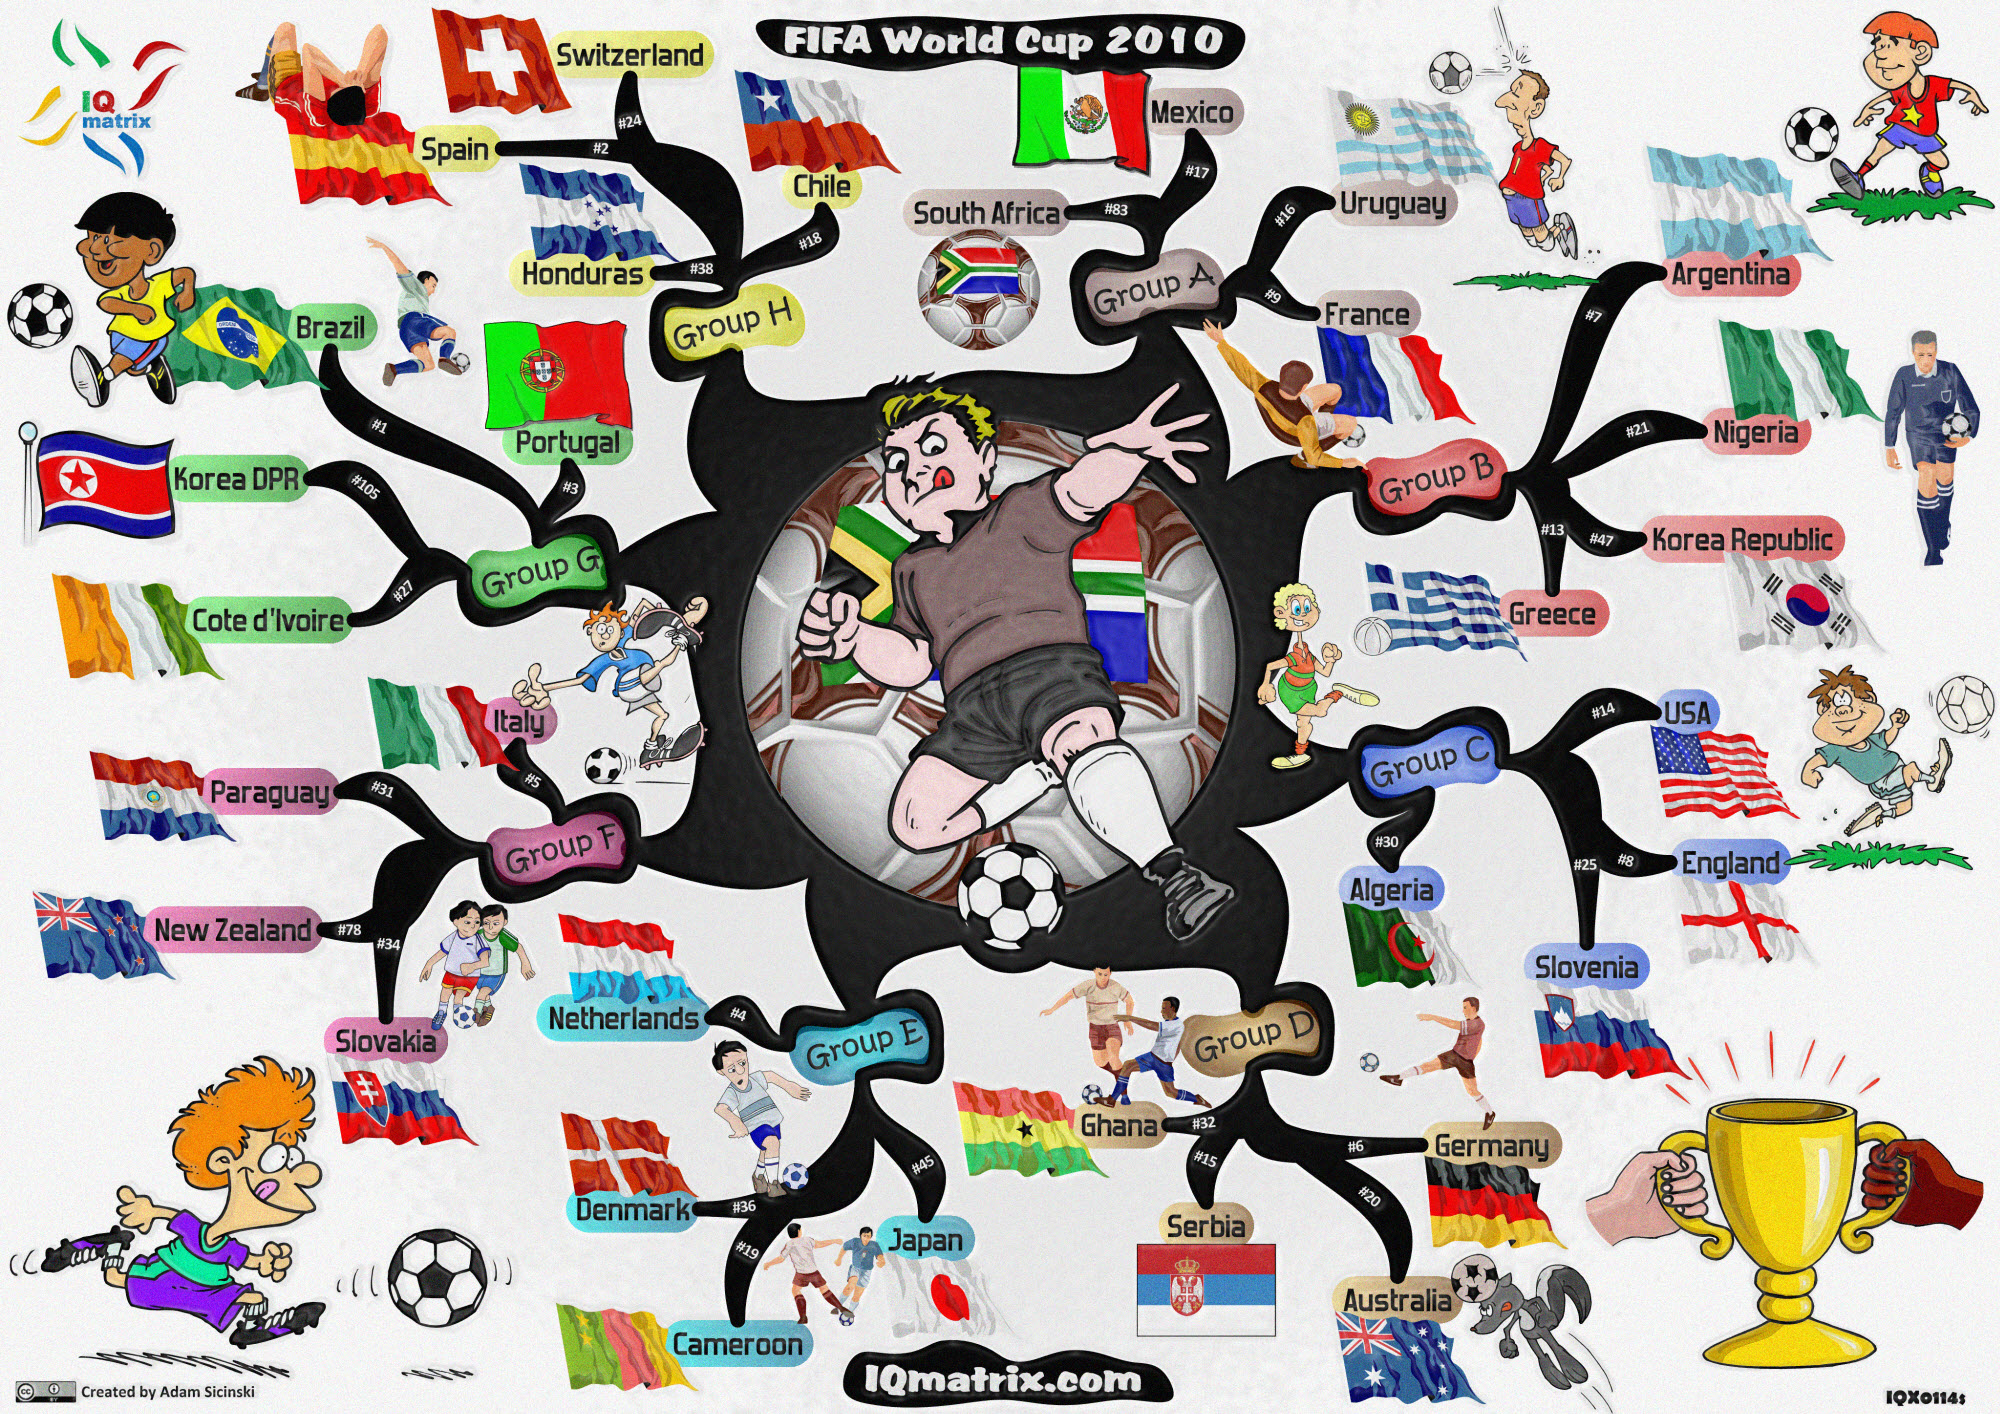 south africa world cup 2010 project leadership Match schedule 2010 fifa world cup south africa™ south africa (rsa) mexico (mex) uruguay (uru) france (fra) argentina (arg) nigeria (nga) korea republic (kor).